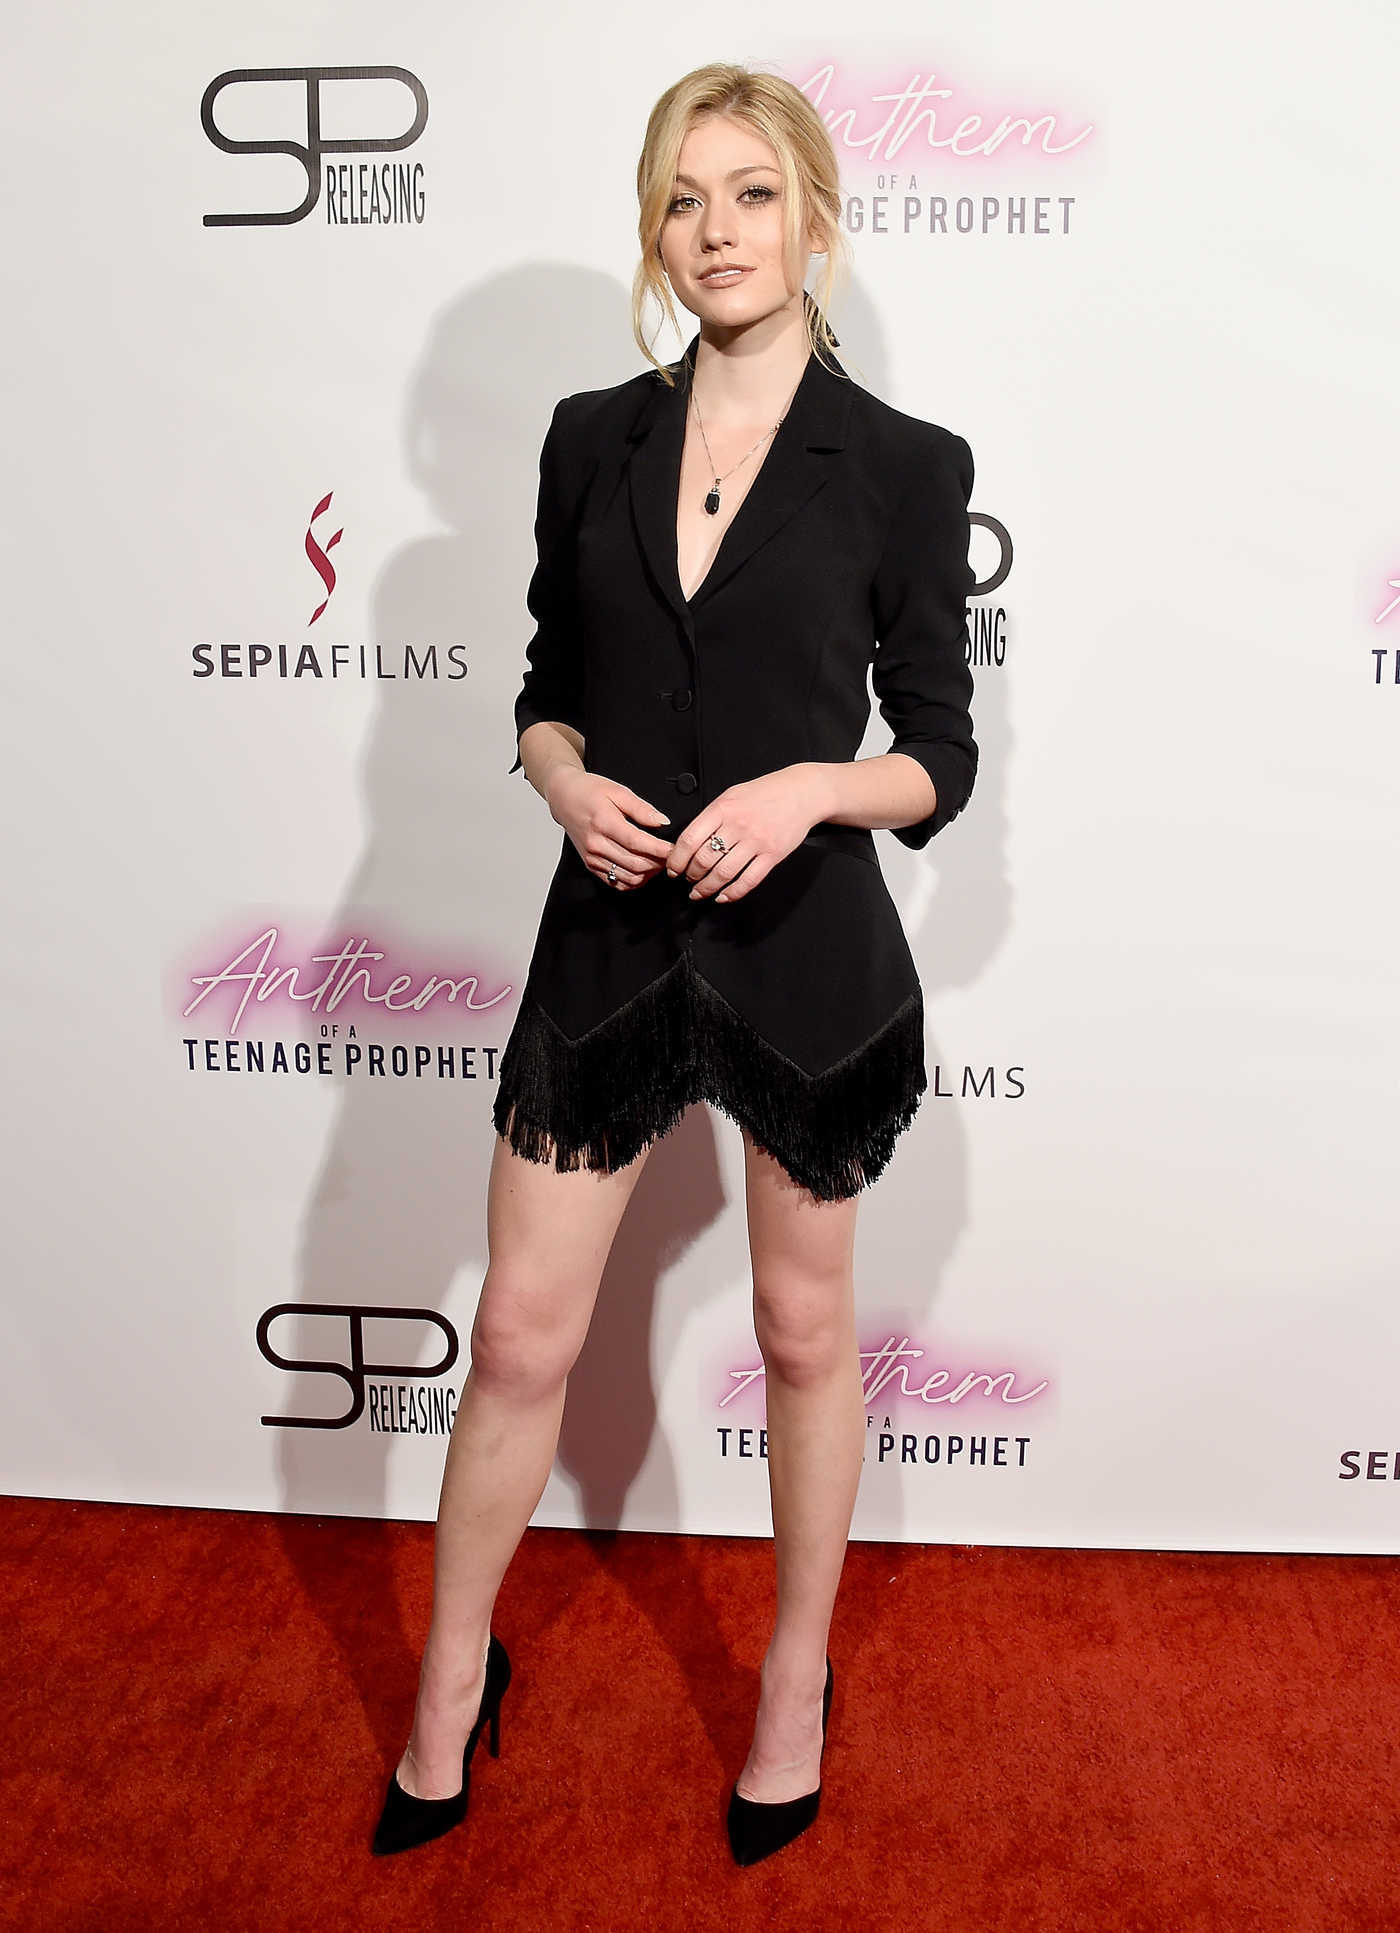 Katherine McNamara Attends Anthem of a Teenage Prophet Premiere in Hollywood 01/10/2019